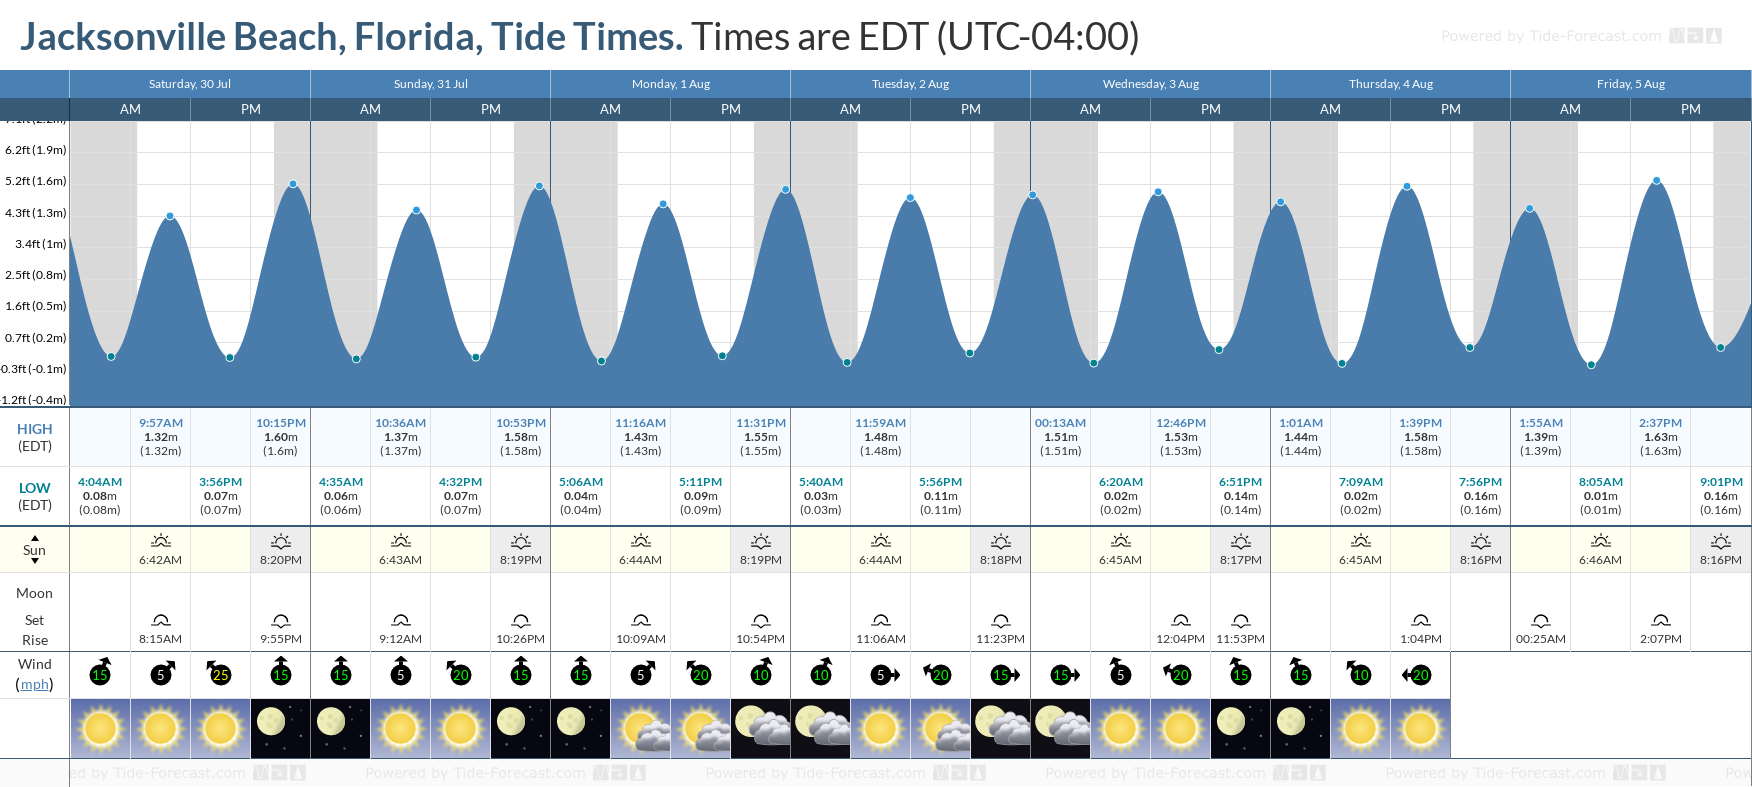 Jacksonville Beach, Florida Tide Chart including high and low tide tide times for the next 7 days